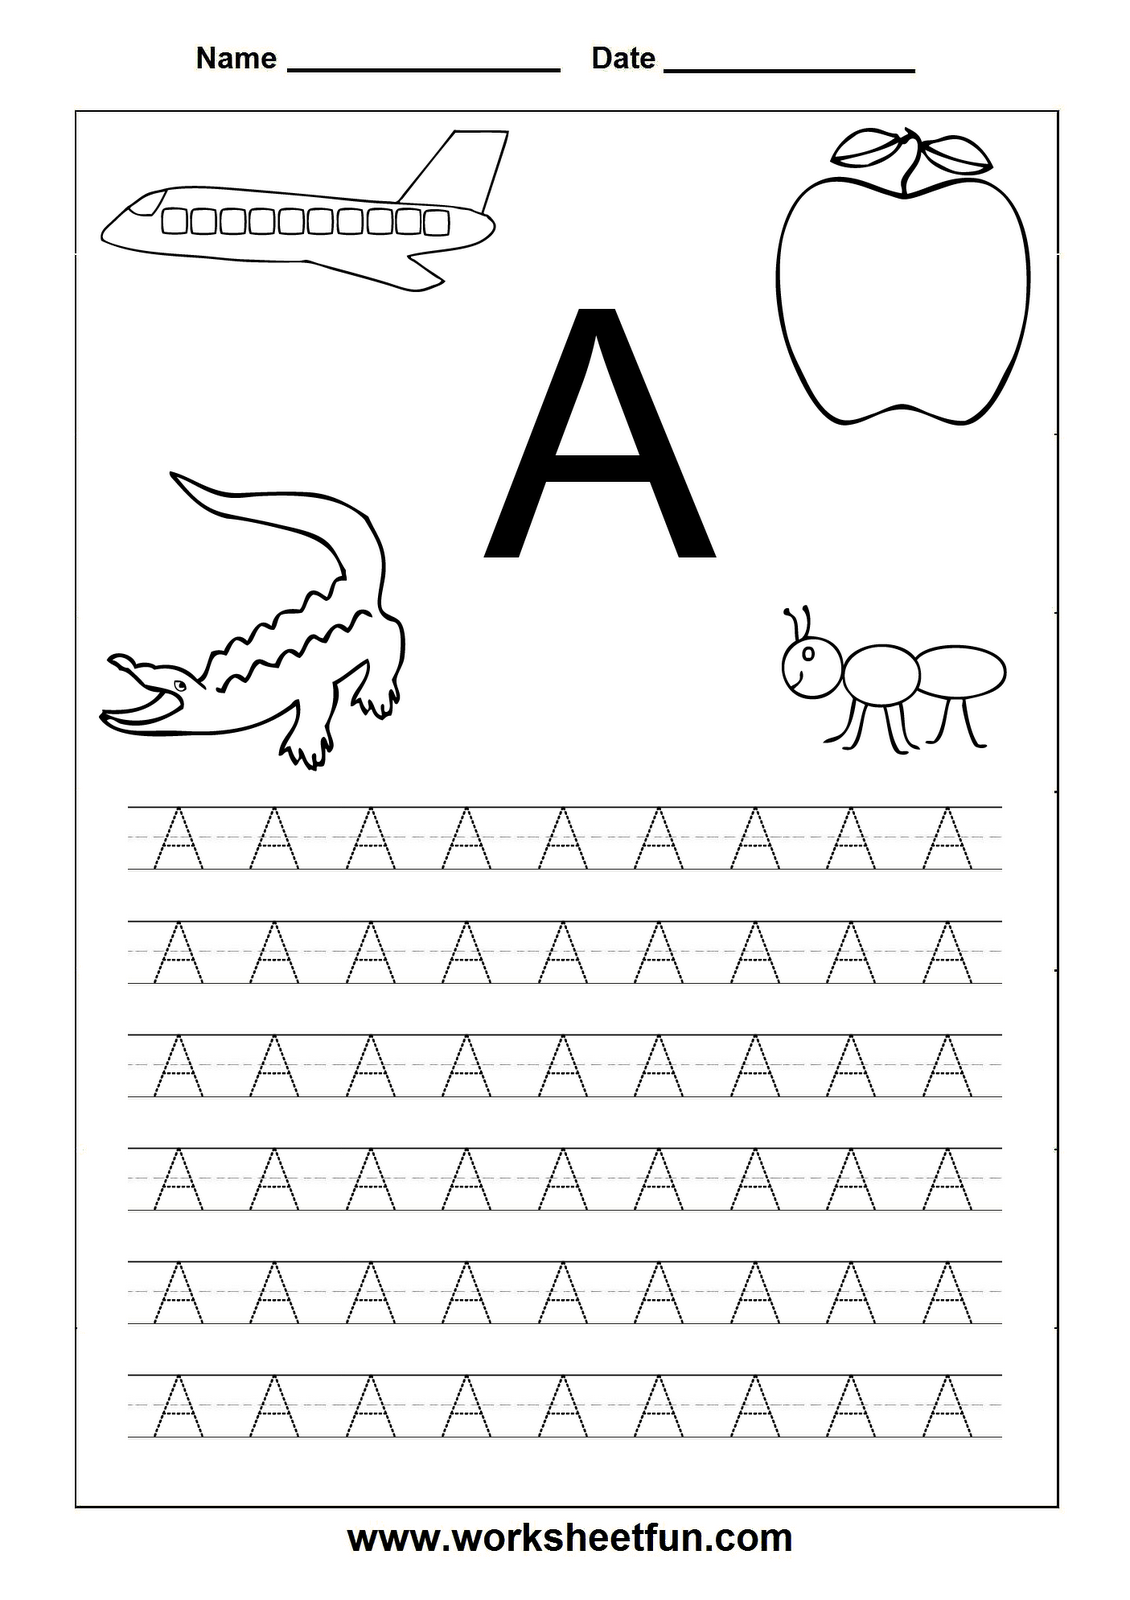 Letter Worksheets For Kindergarten Printable Letters – Free Printable Toddler Worksheets